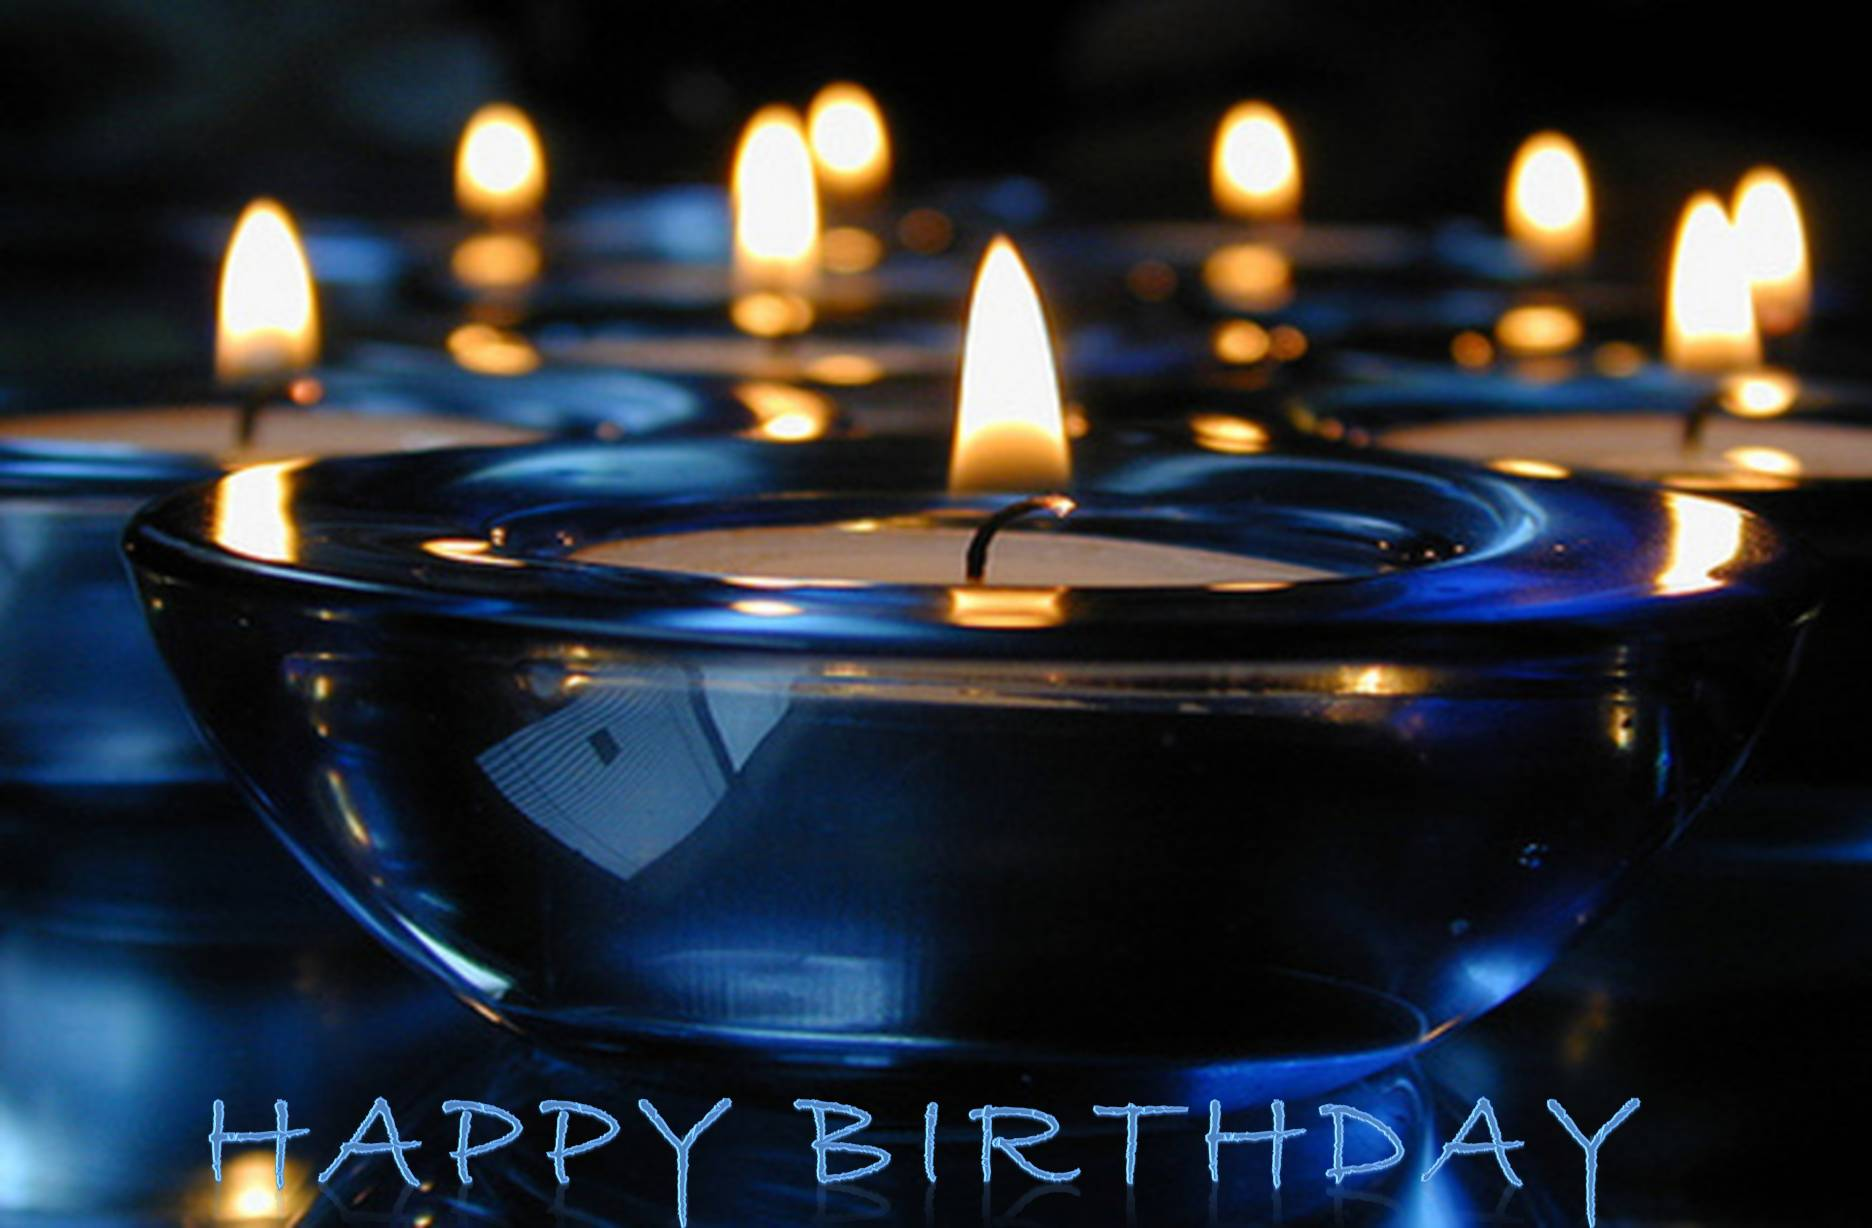 good birthday images ; Happy-Birthday-Good-Wishes-With-candle-2014